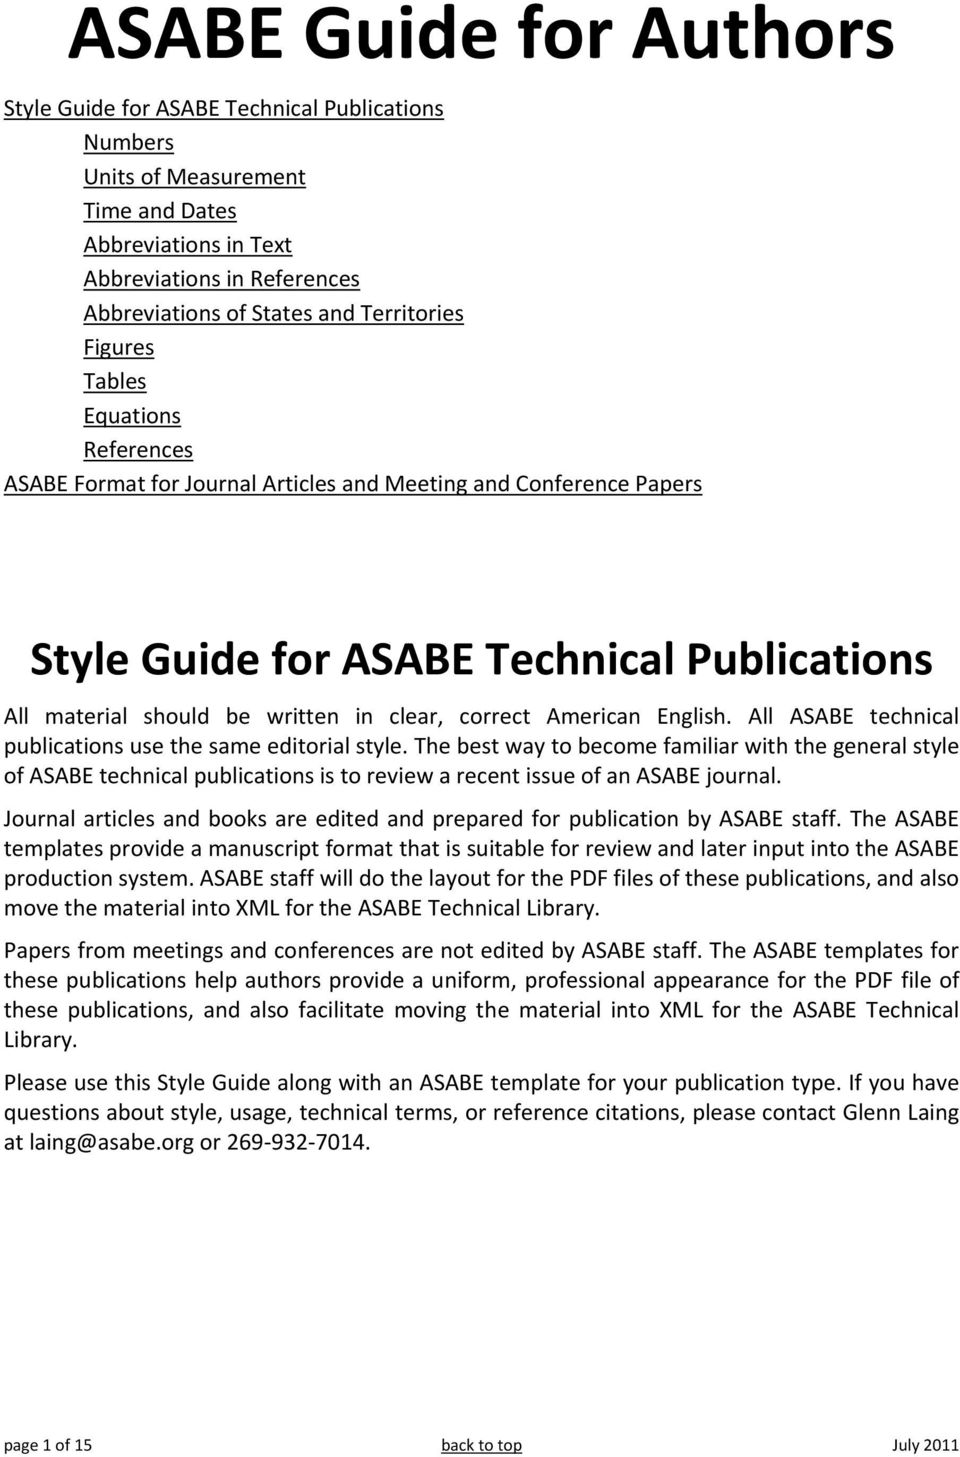 clear, correct American English. All ASABE technical publications use the same editorial style.